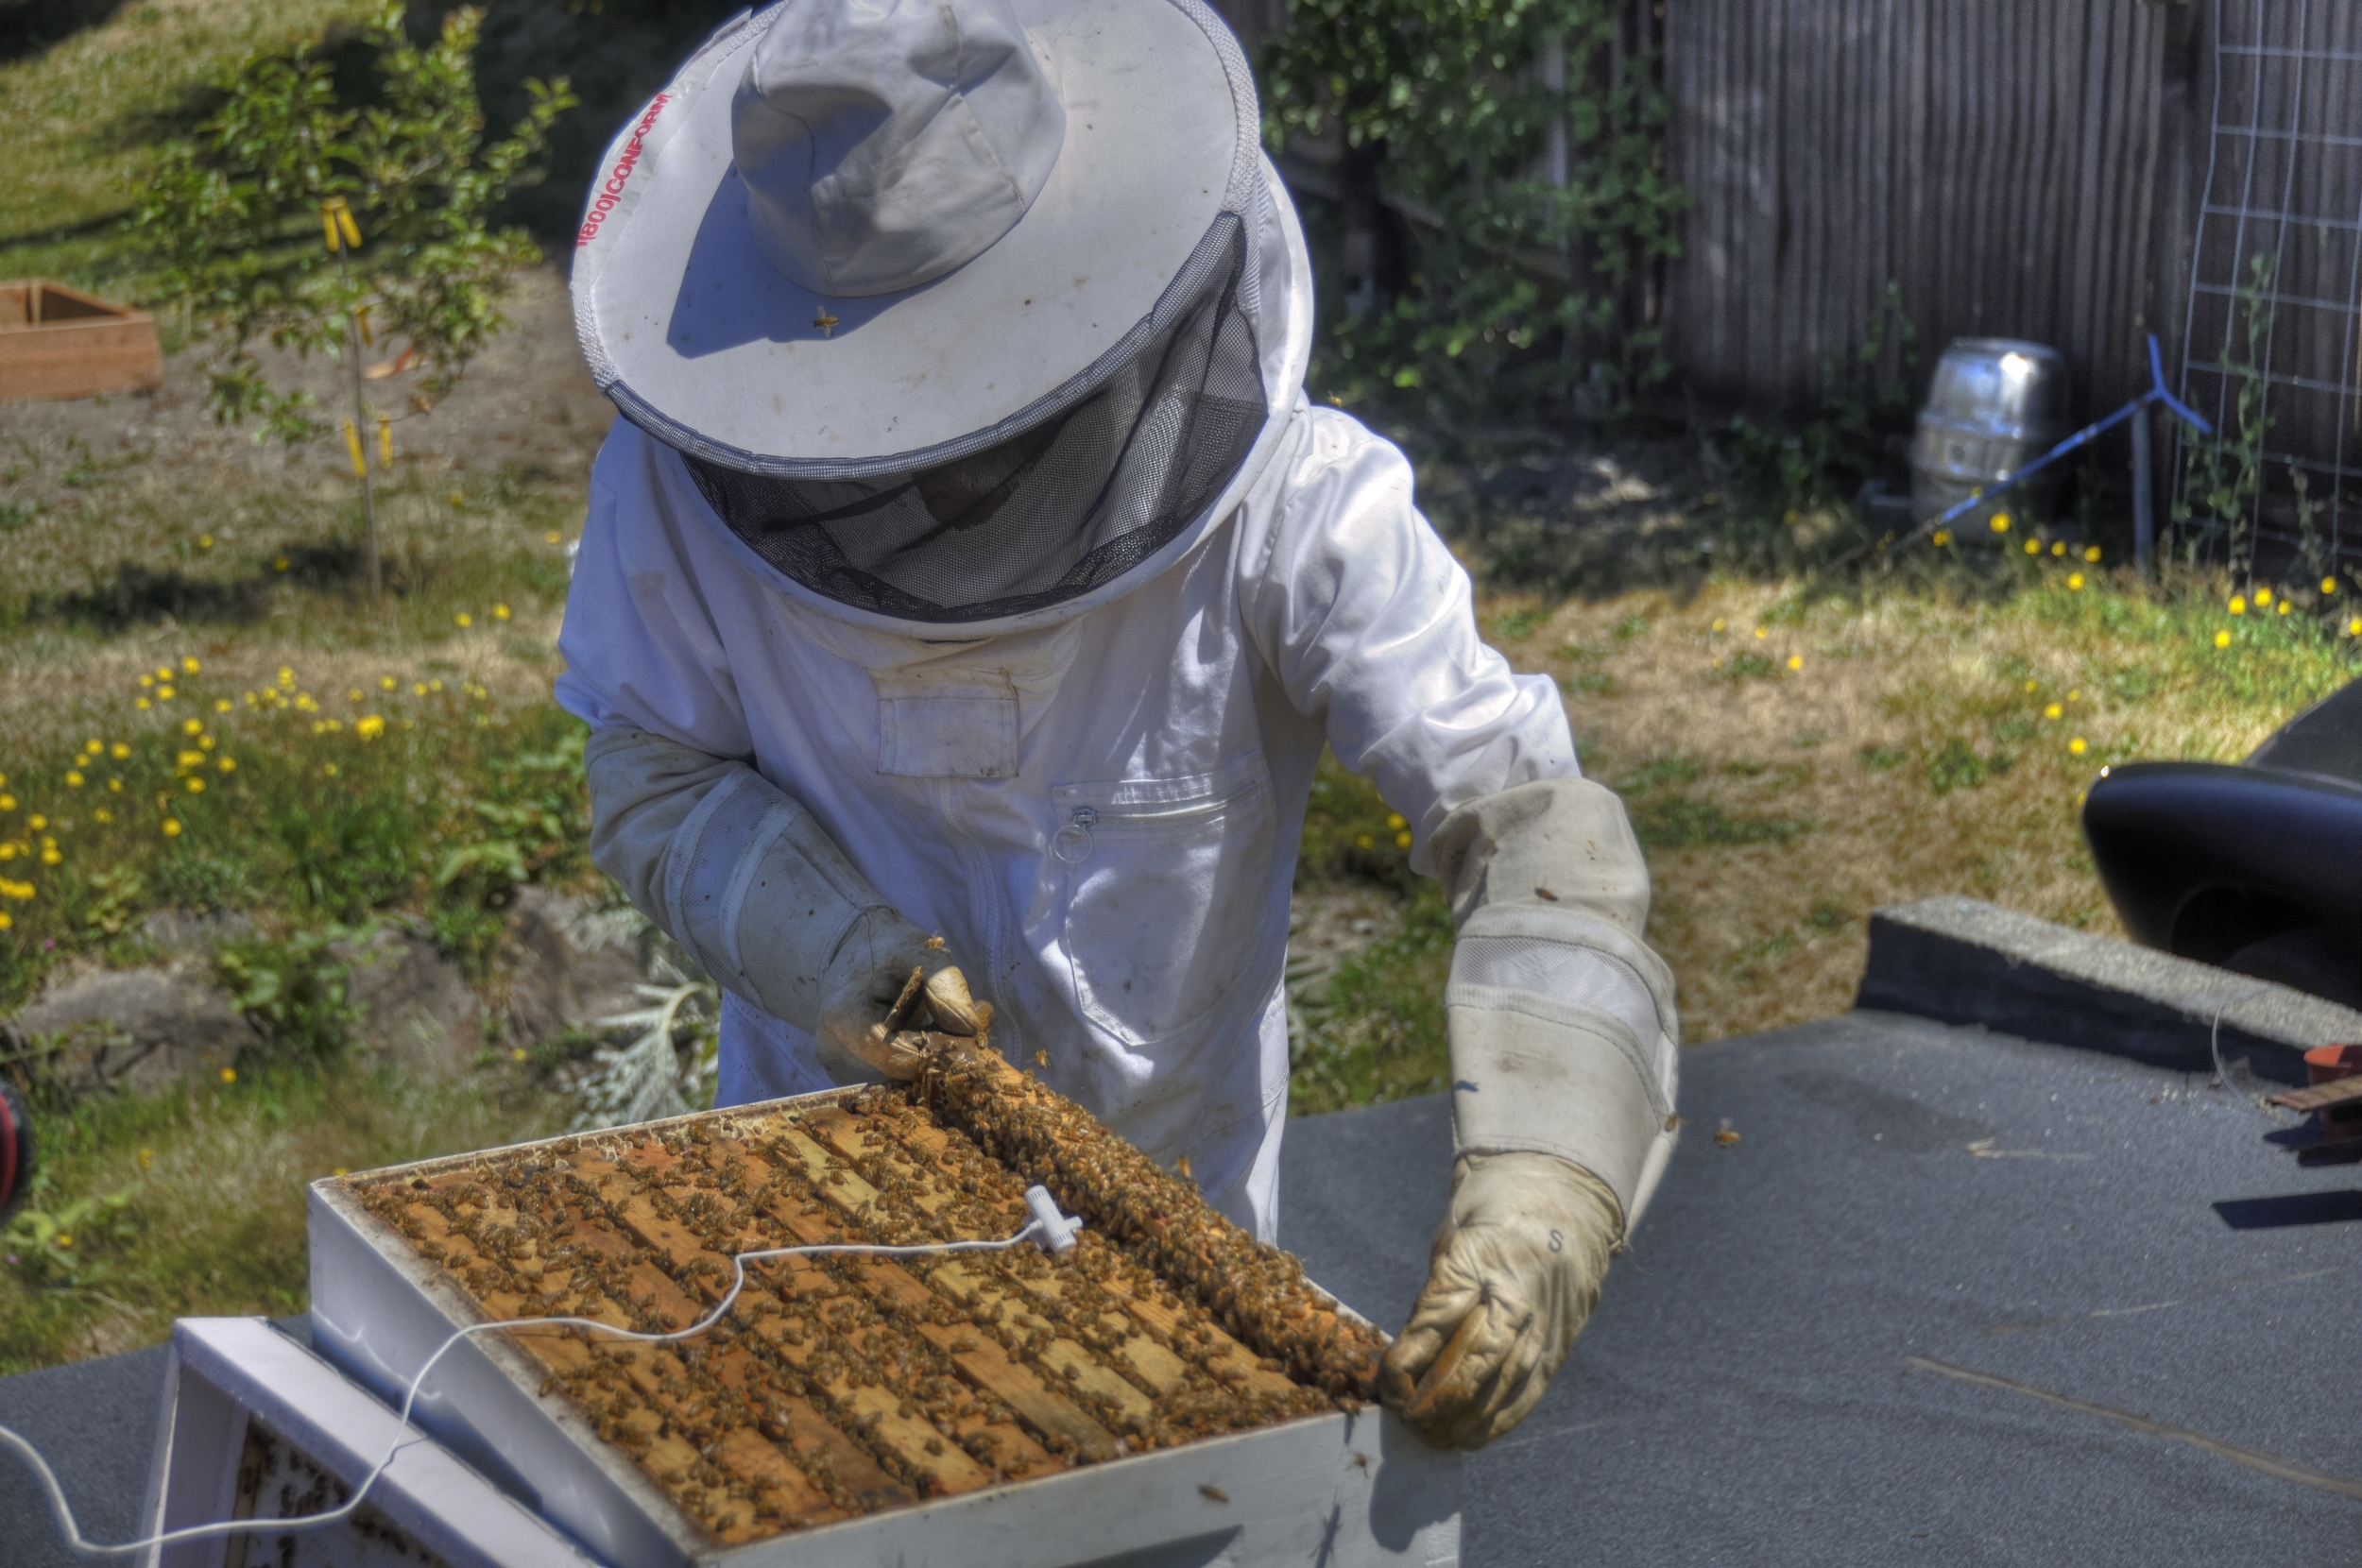 A man and his bees